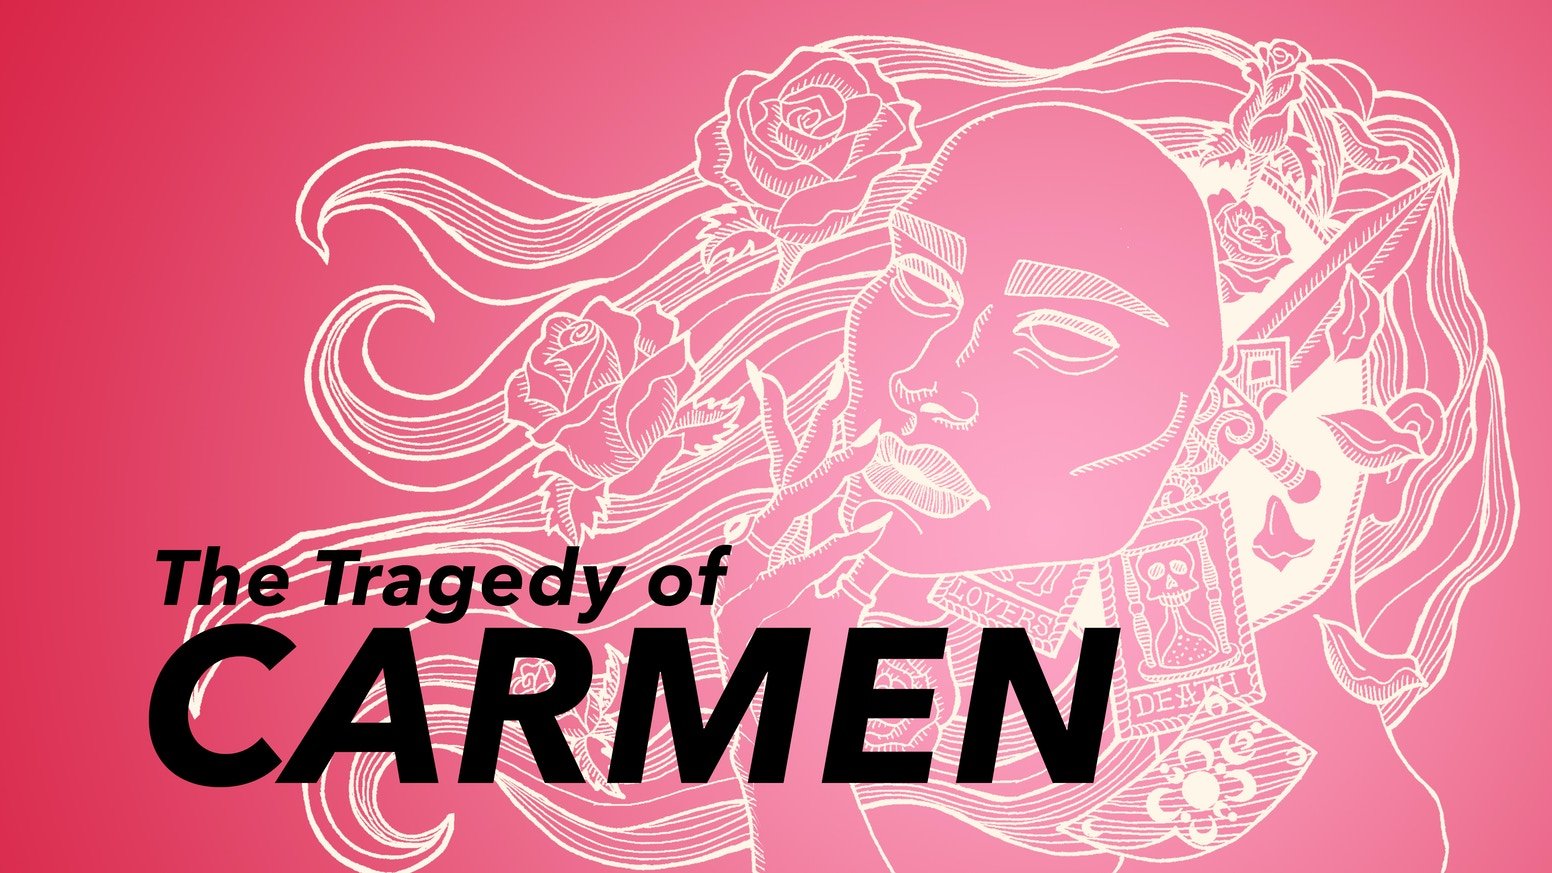 A brand new staging of 'The Tragedy of Carmen', with world-class talent, at your doorstep.